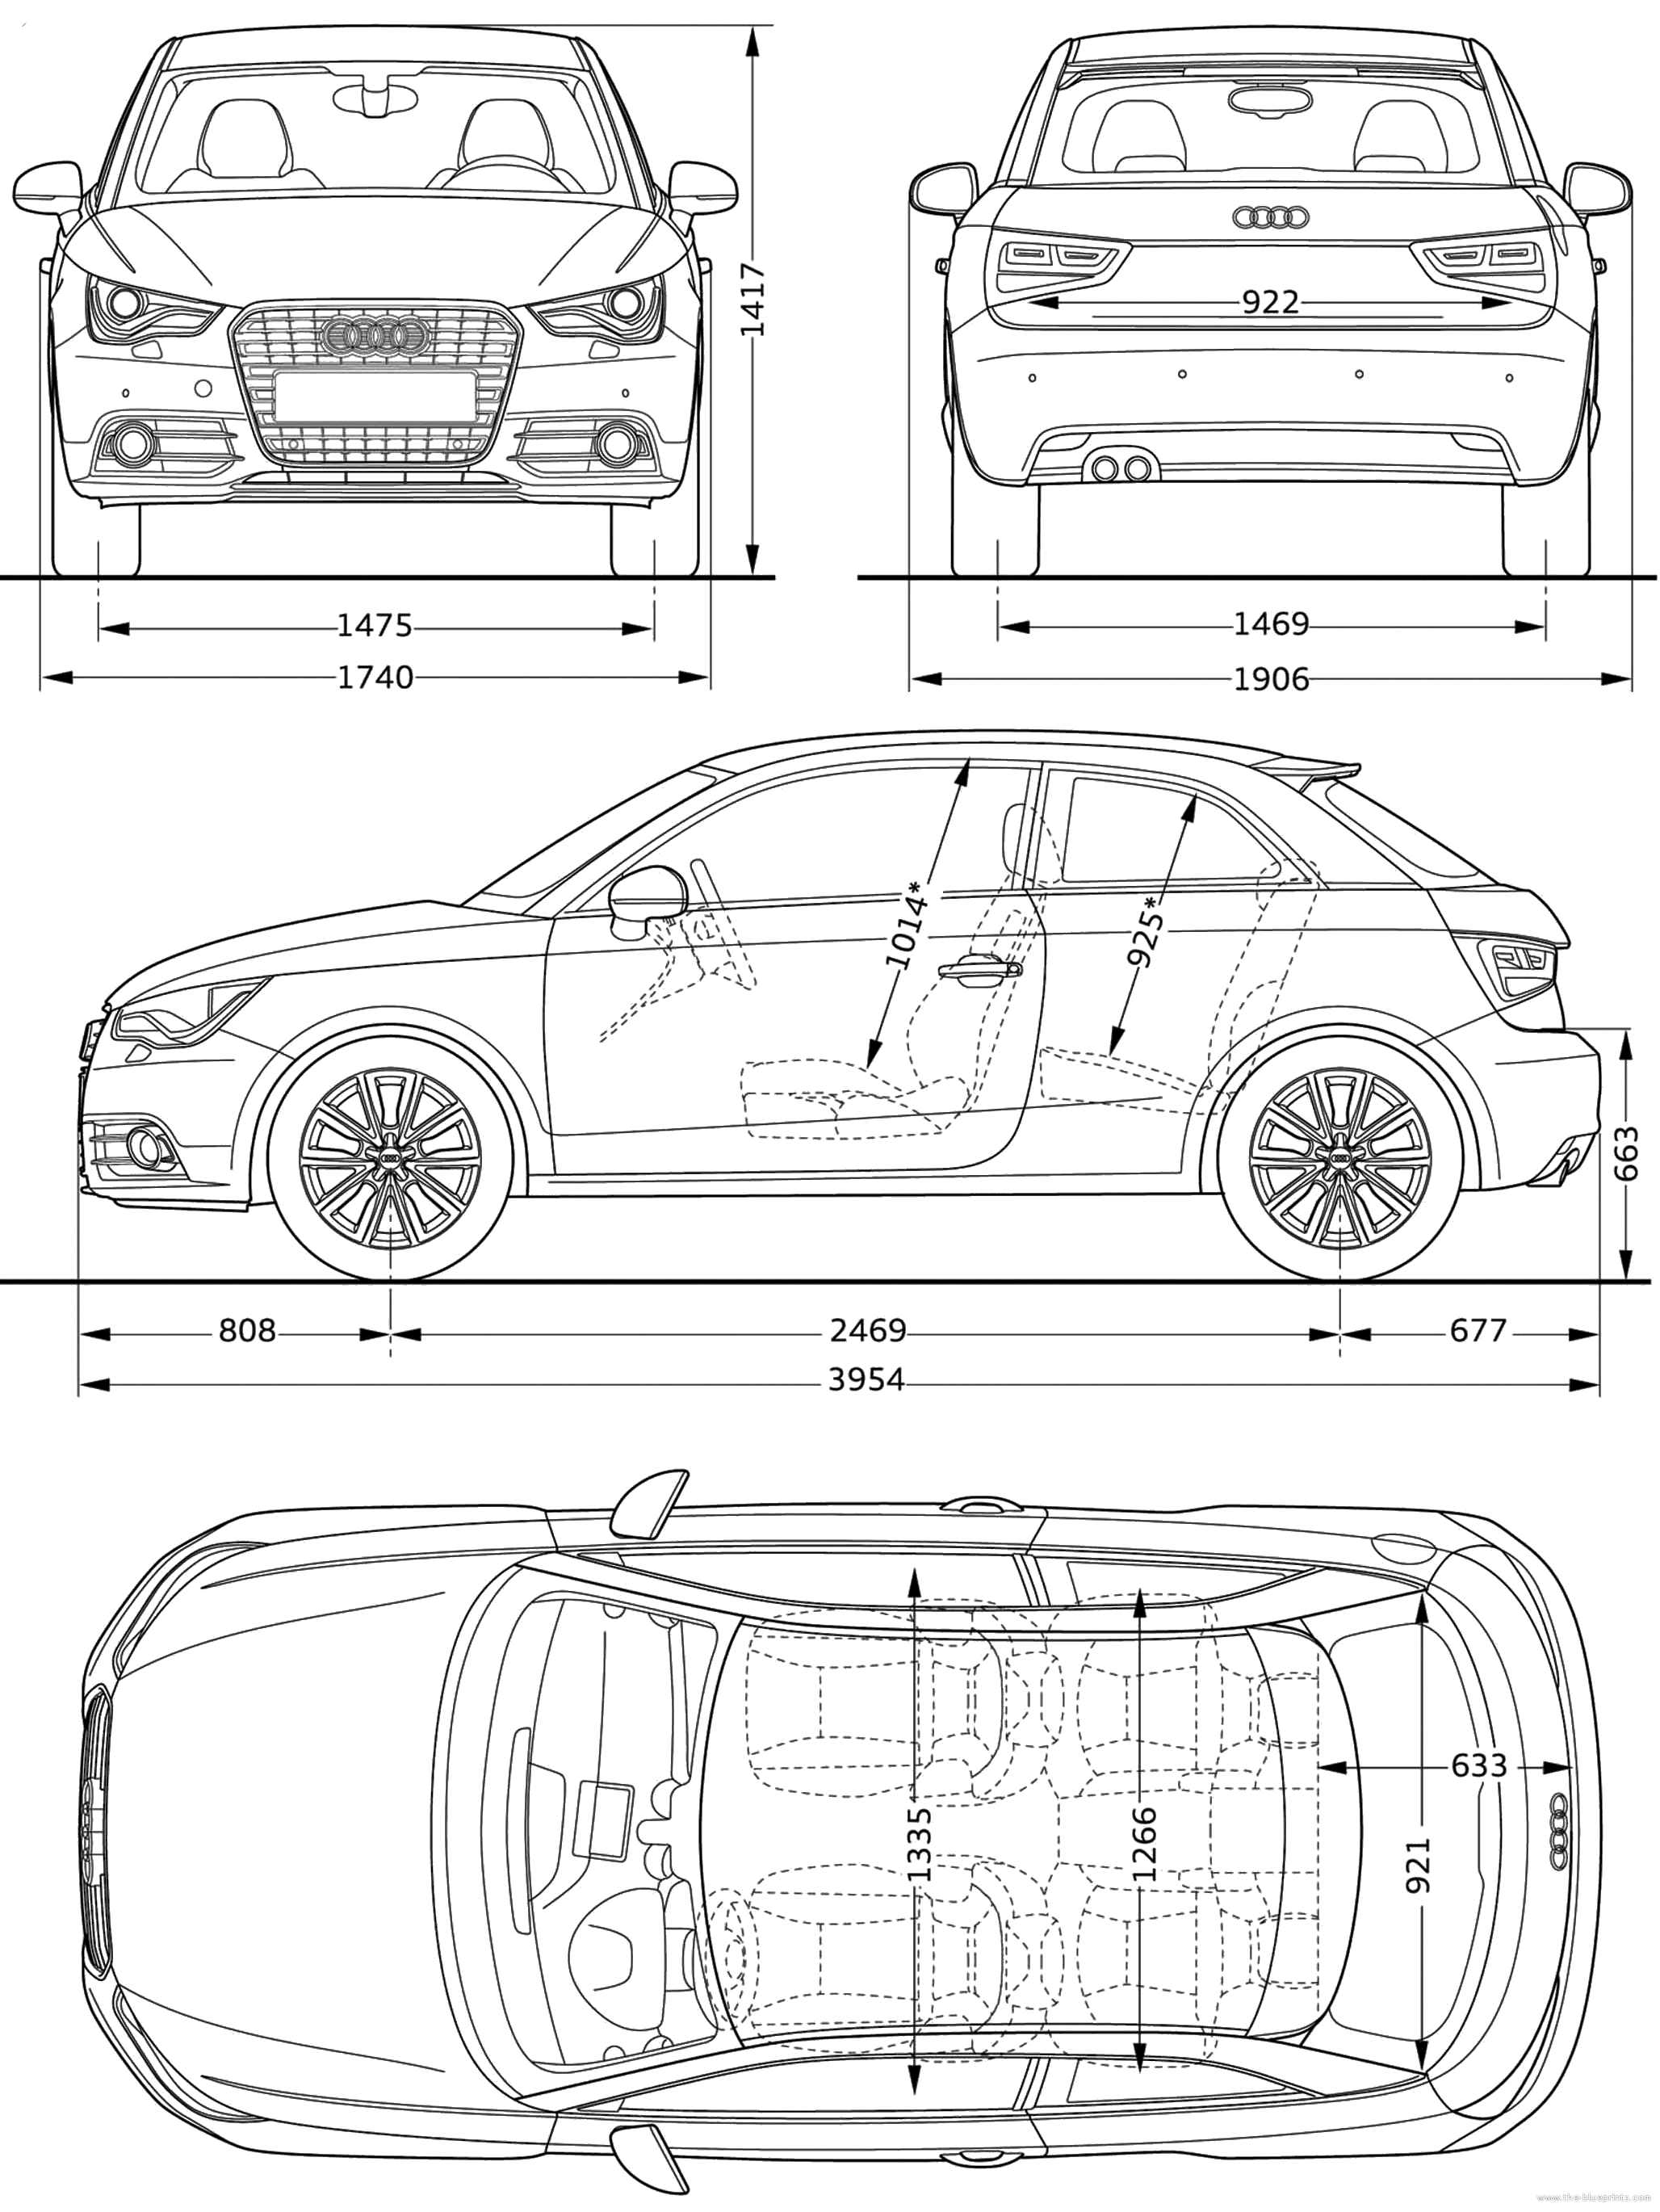 The Blueprintscom Blueprints > Cars Audi A1 2010 | blueprints ...